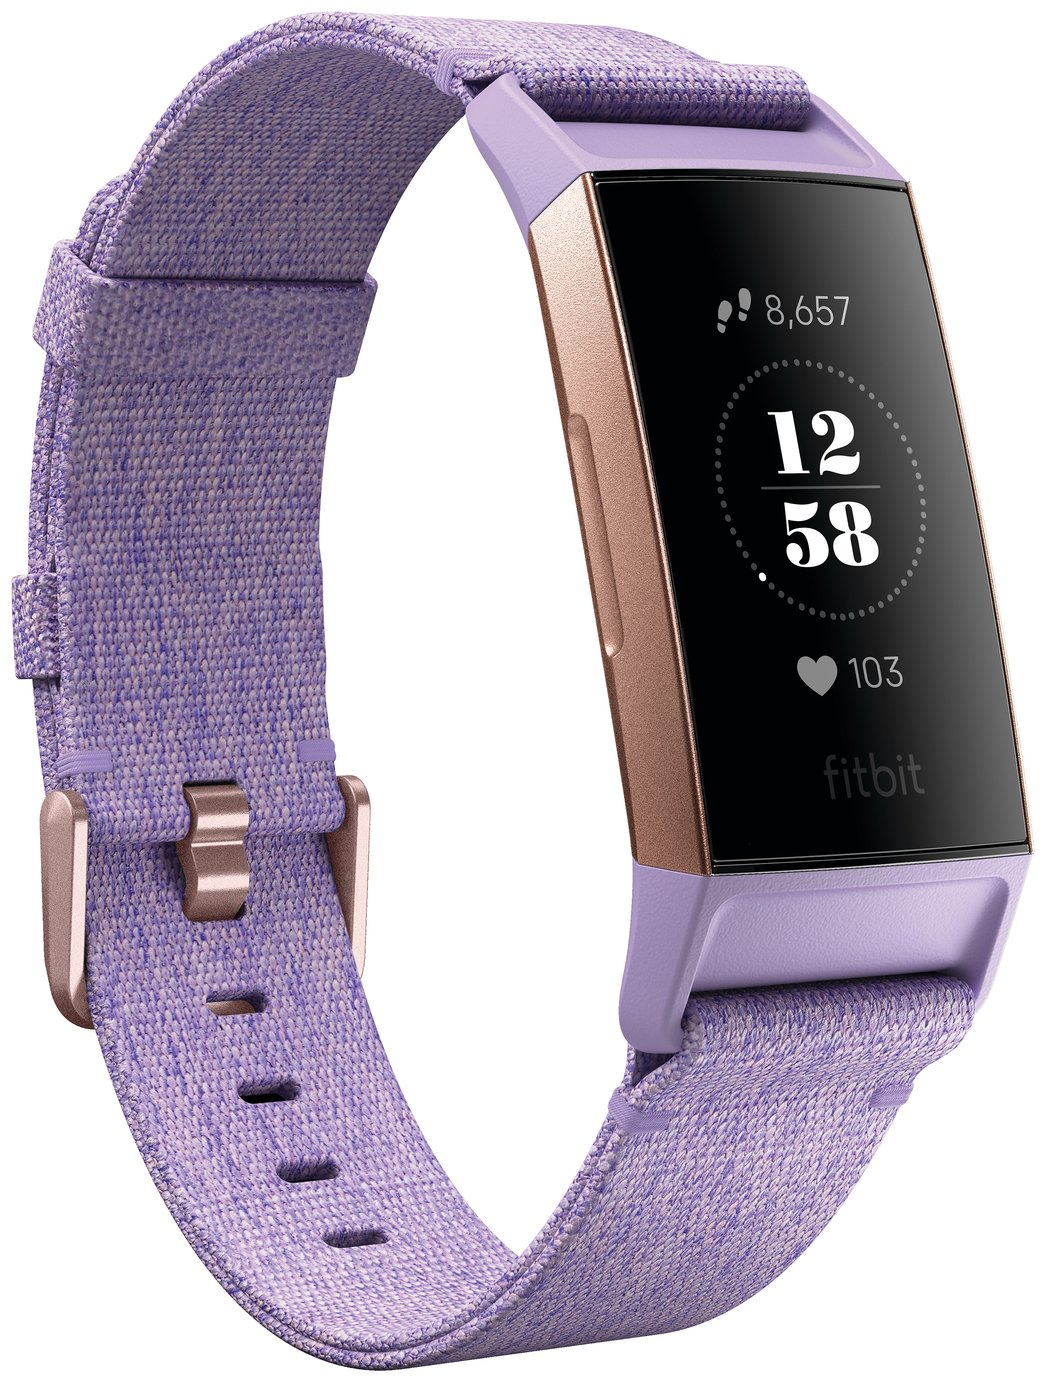 Fitbit Charge 3 Special Edition Smart Watch - Lavender